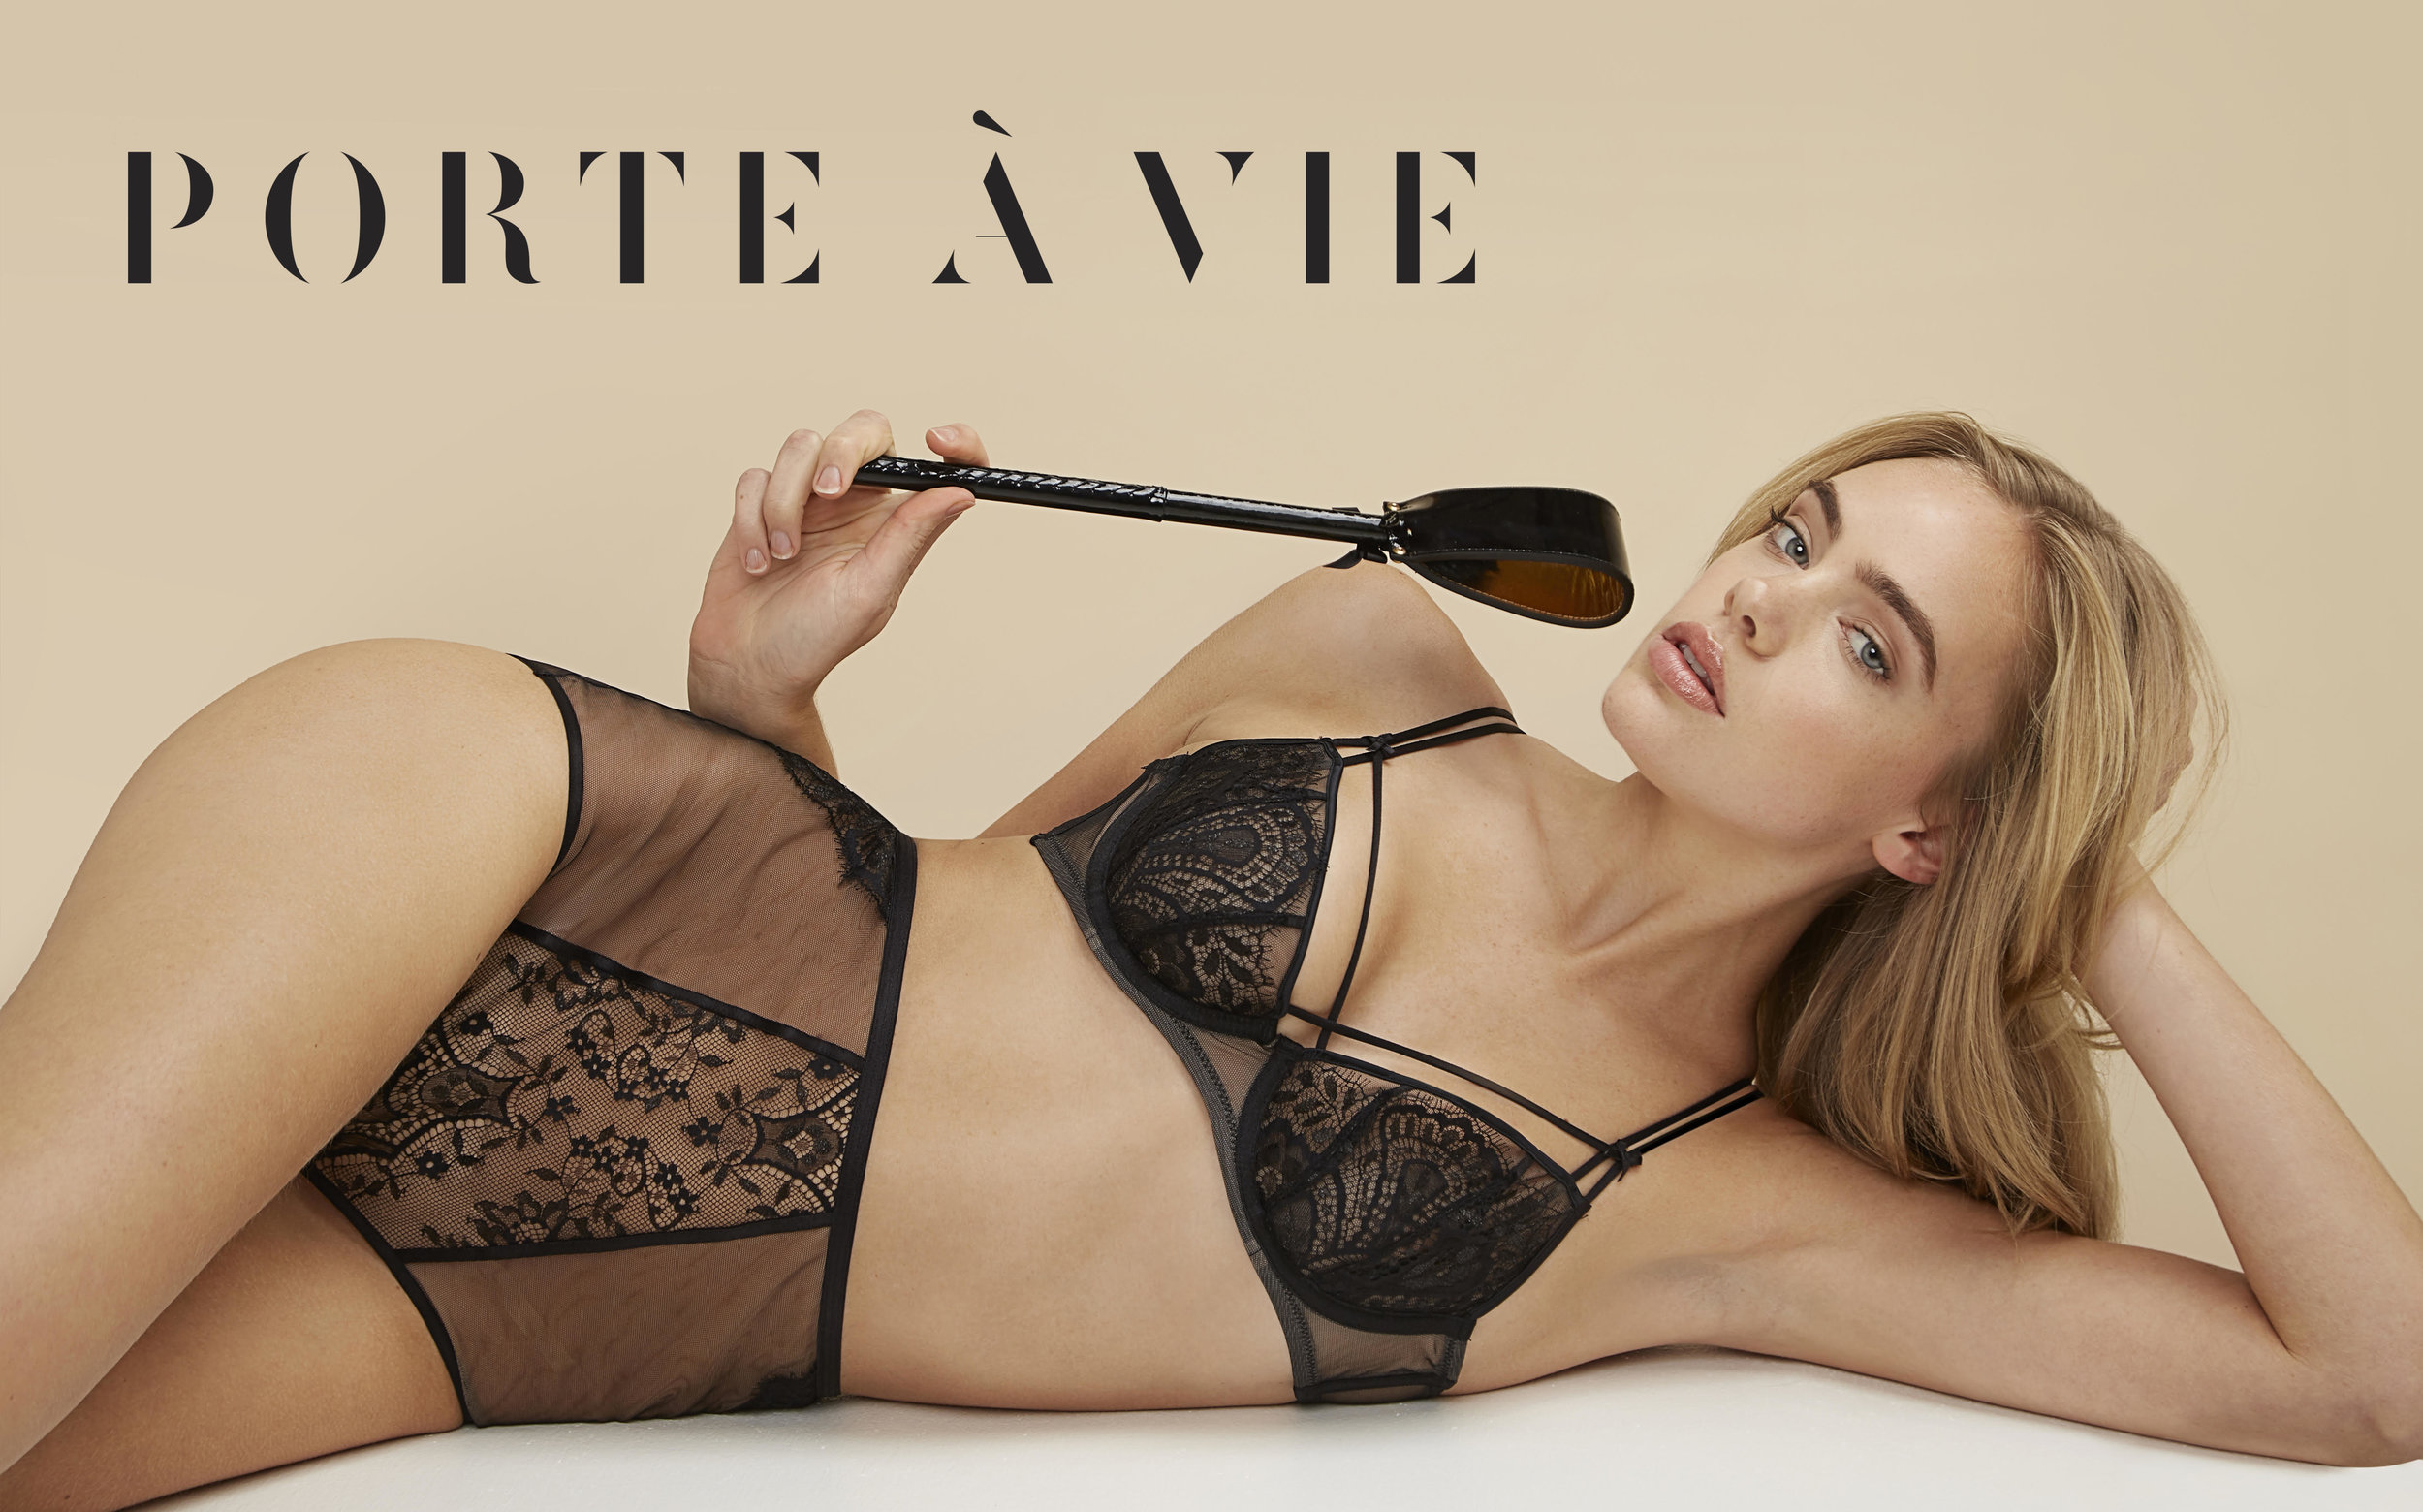 Find beautiful lingerie brands at    porteavie.com